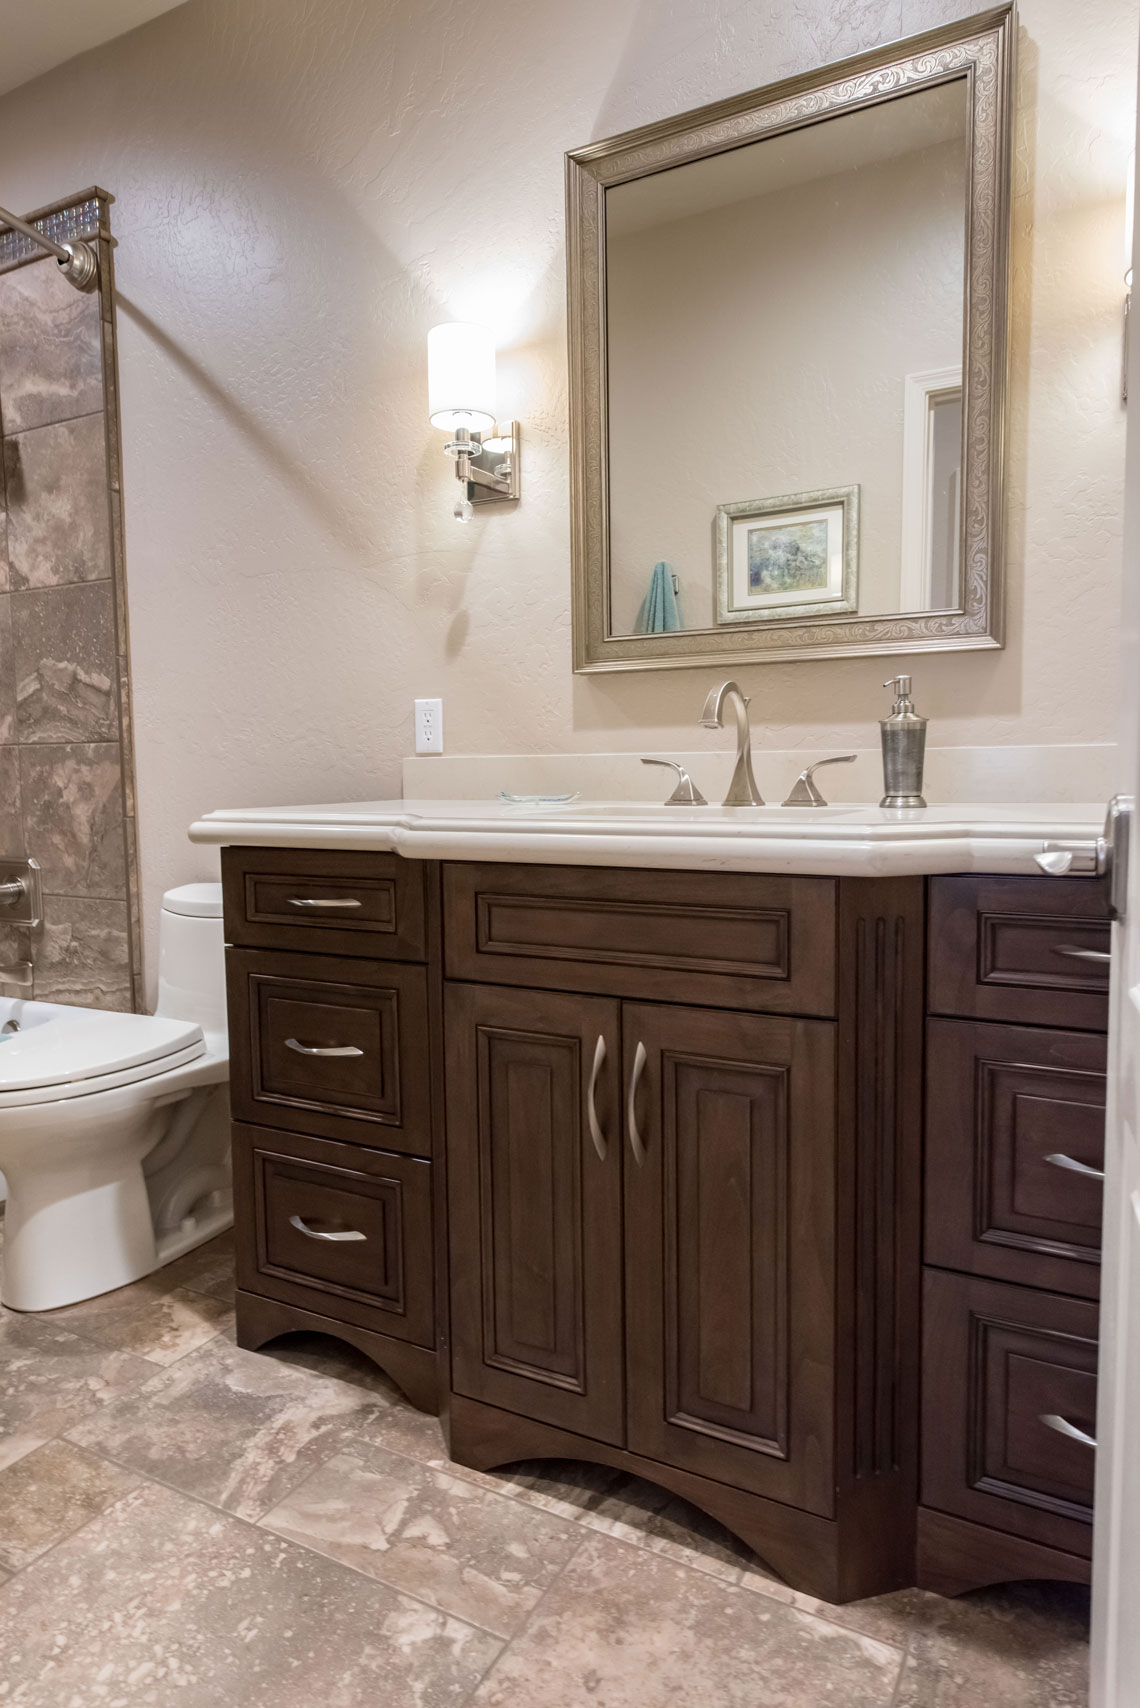 BHB-Behrmann-Home-Basics-Scottsdale-Bathroom-Upgrade-June-2016-90-web